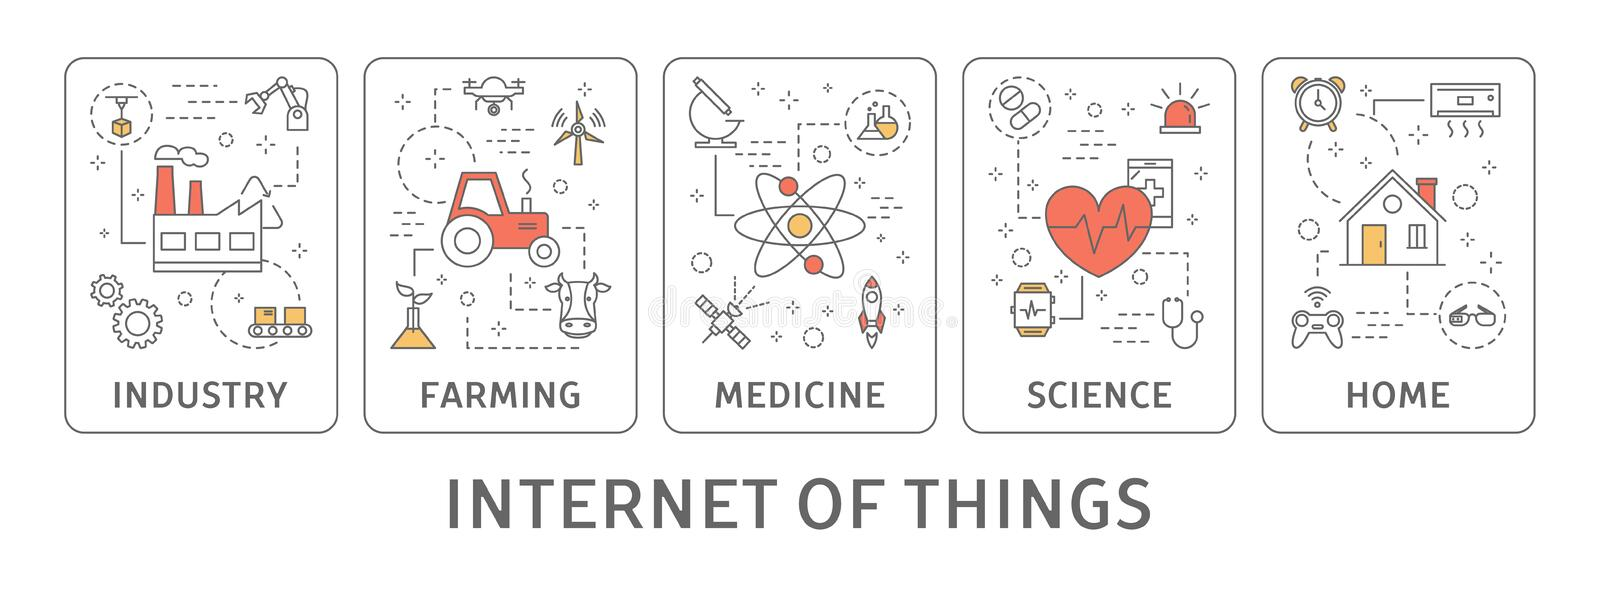 Internet of things. royalty free illustration